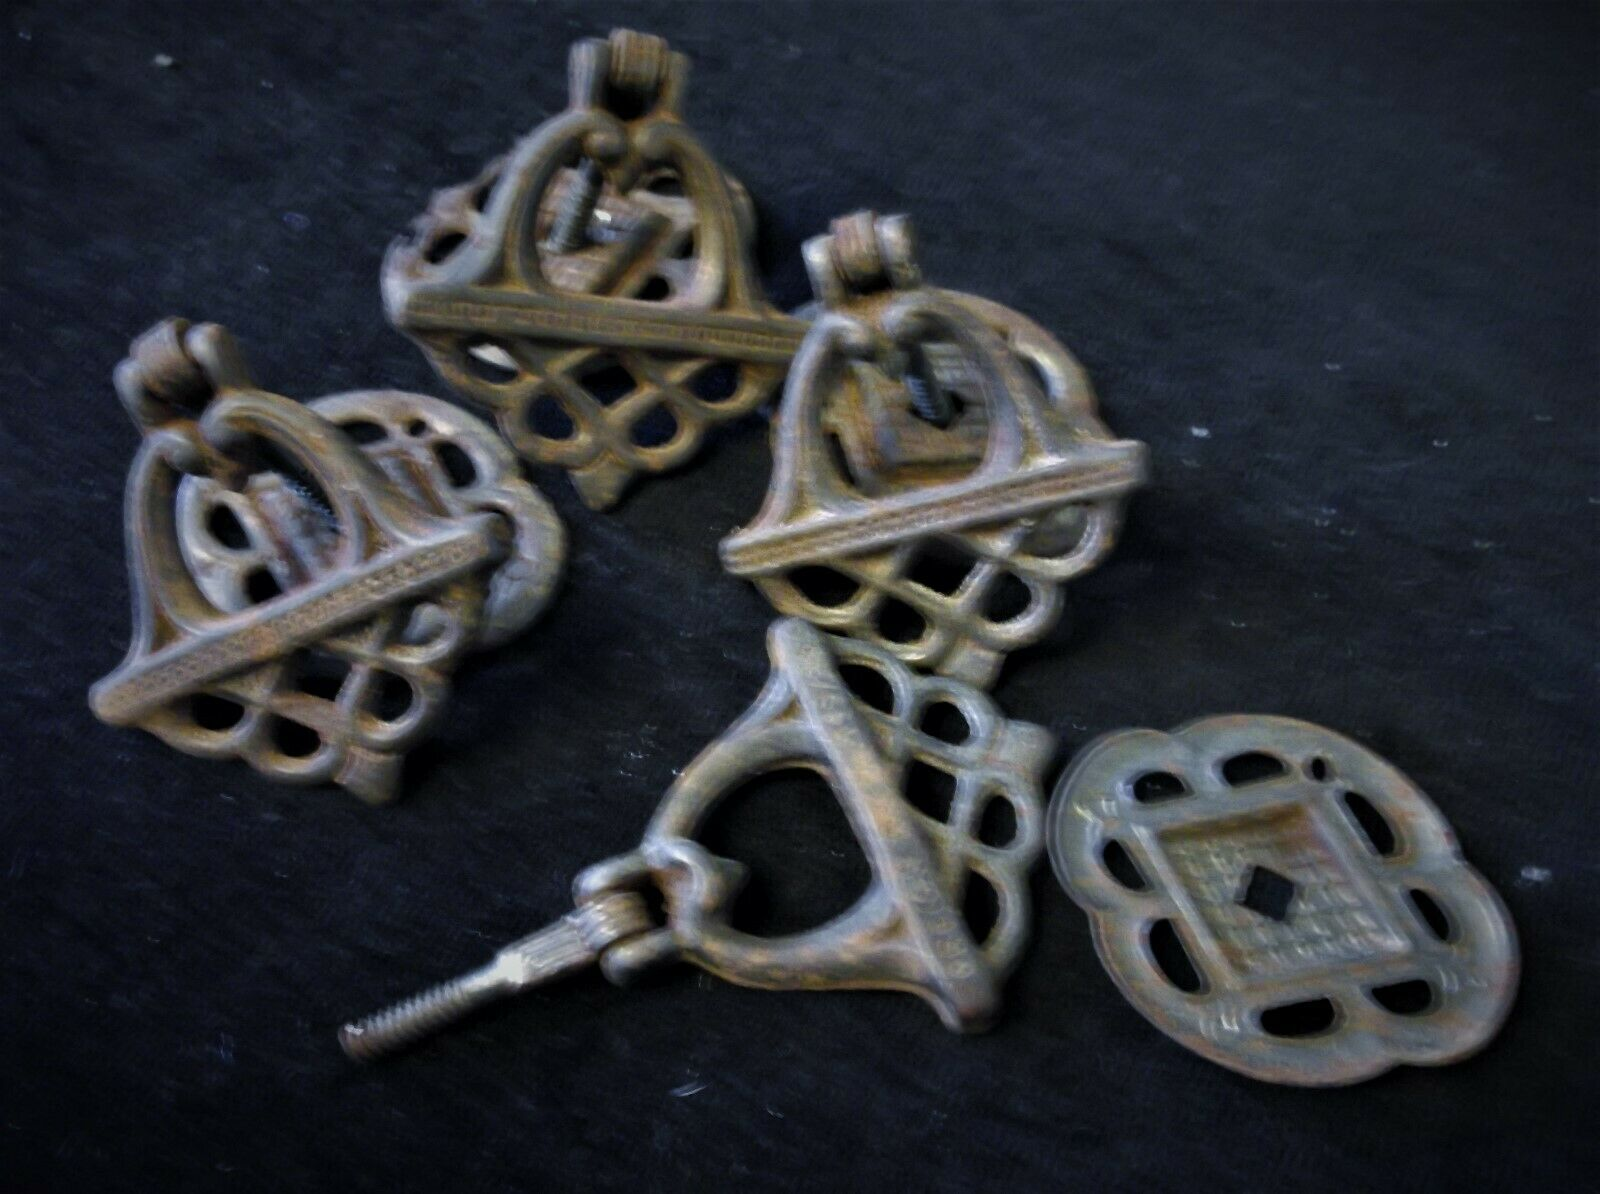 4 X GENUINE OLD CAST IRON DRAWER DROP HANDLES ORNATE + ORIGINAL BACKINGS Rd 799